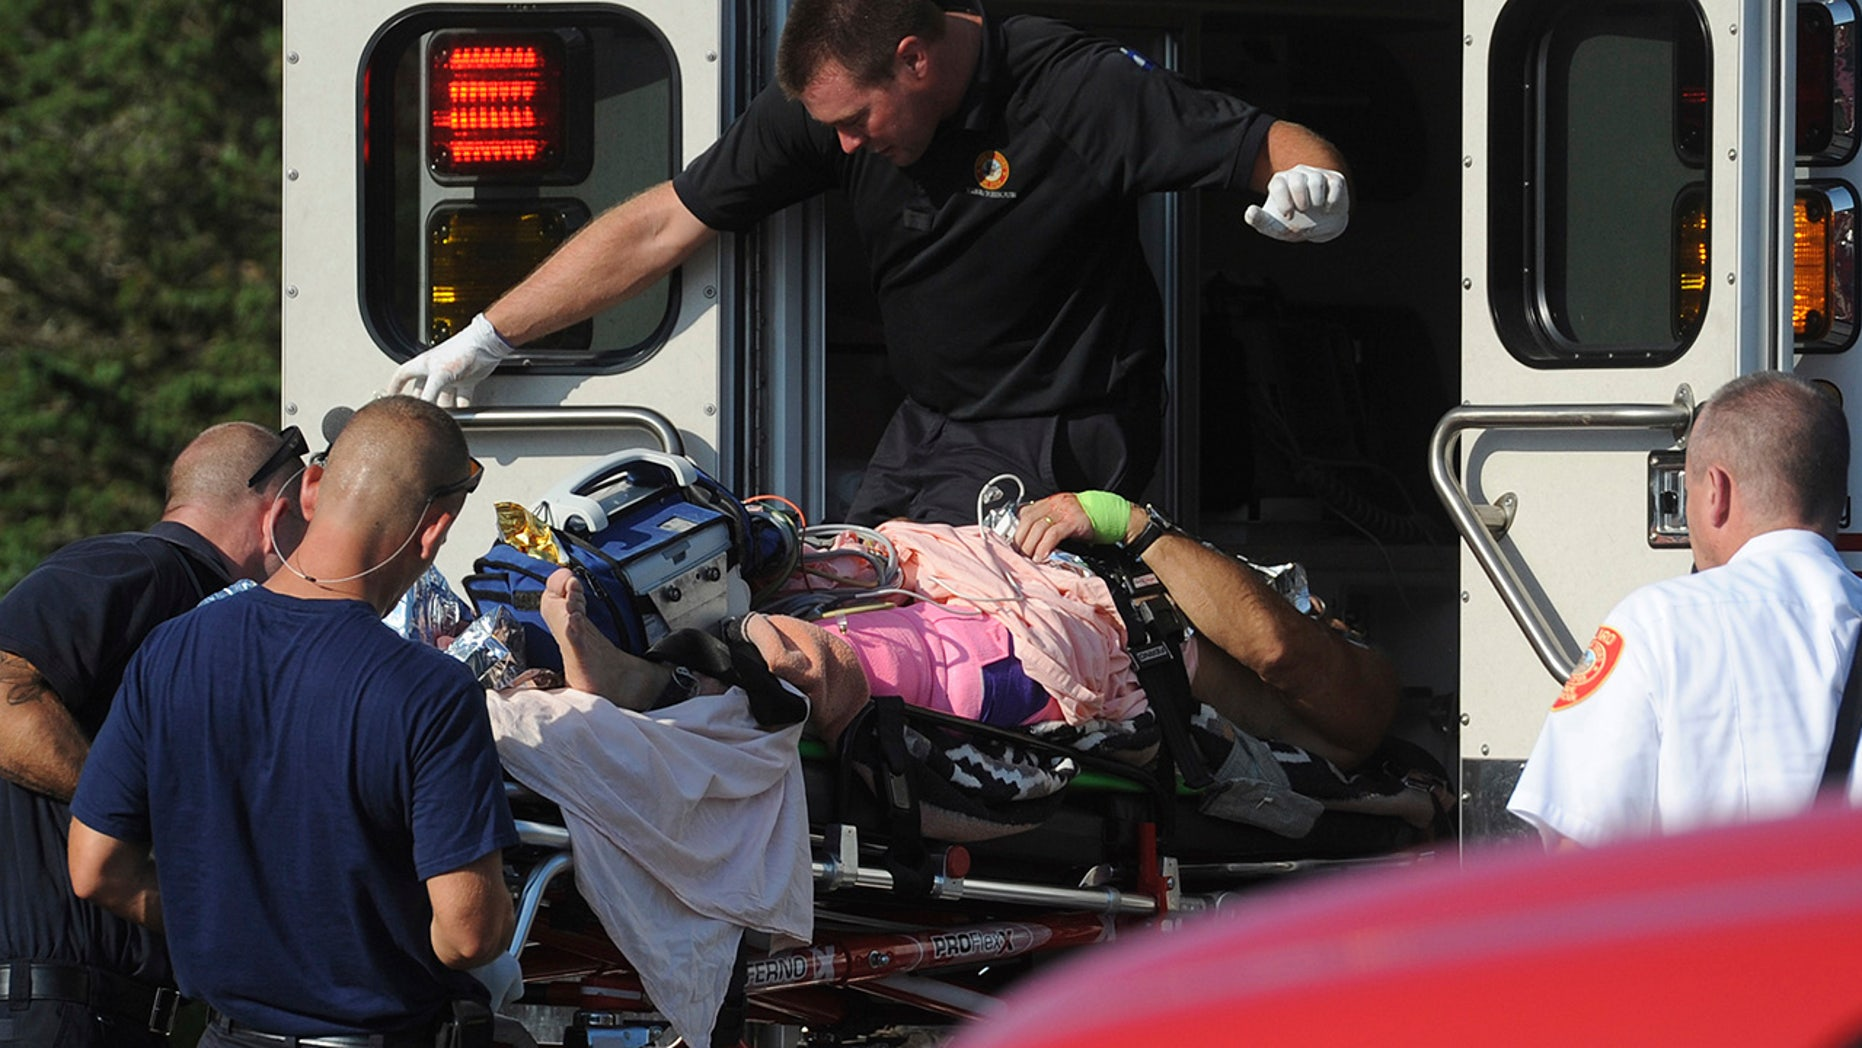 William Lytton, 61, of Scarsdale N.Y., was airlifted to a Boston hospital after suffering a shark bite off Cape Cod on Wednesday that resulted in deep puncture wounds to his torso and legs.